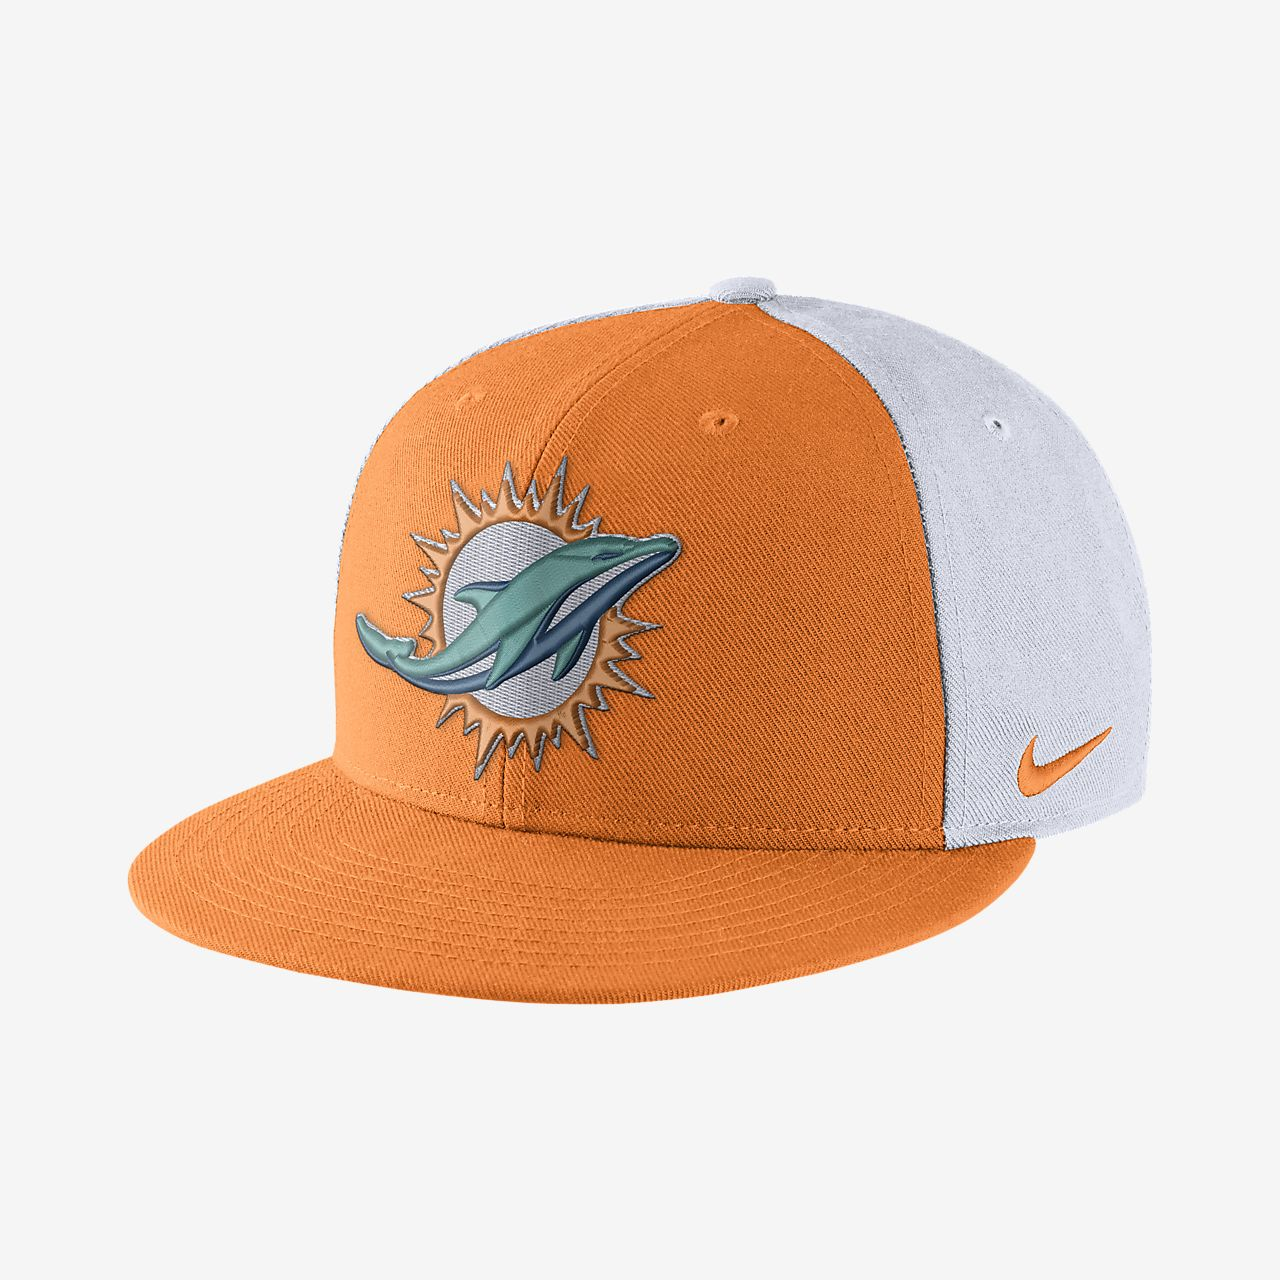 more photos f563c 71e01 ... coupon code nike color rush true nfl dolphins adjustable hat 31b11  dc7d7 clearance mens new ...